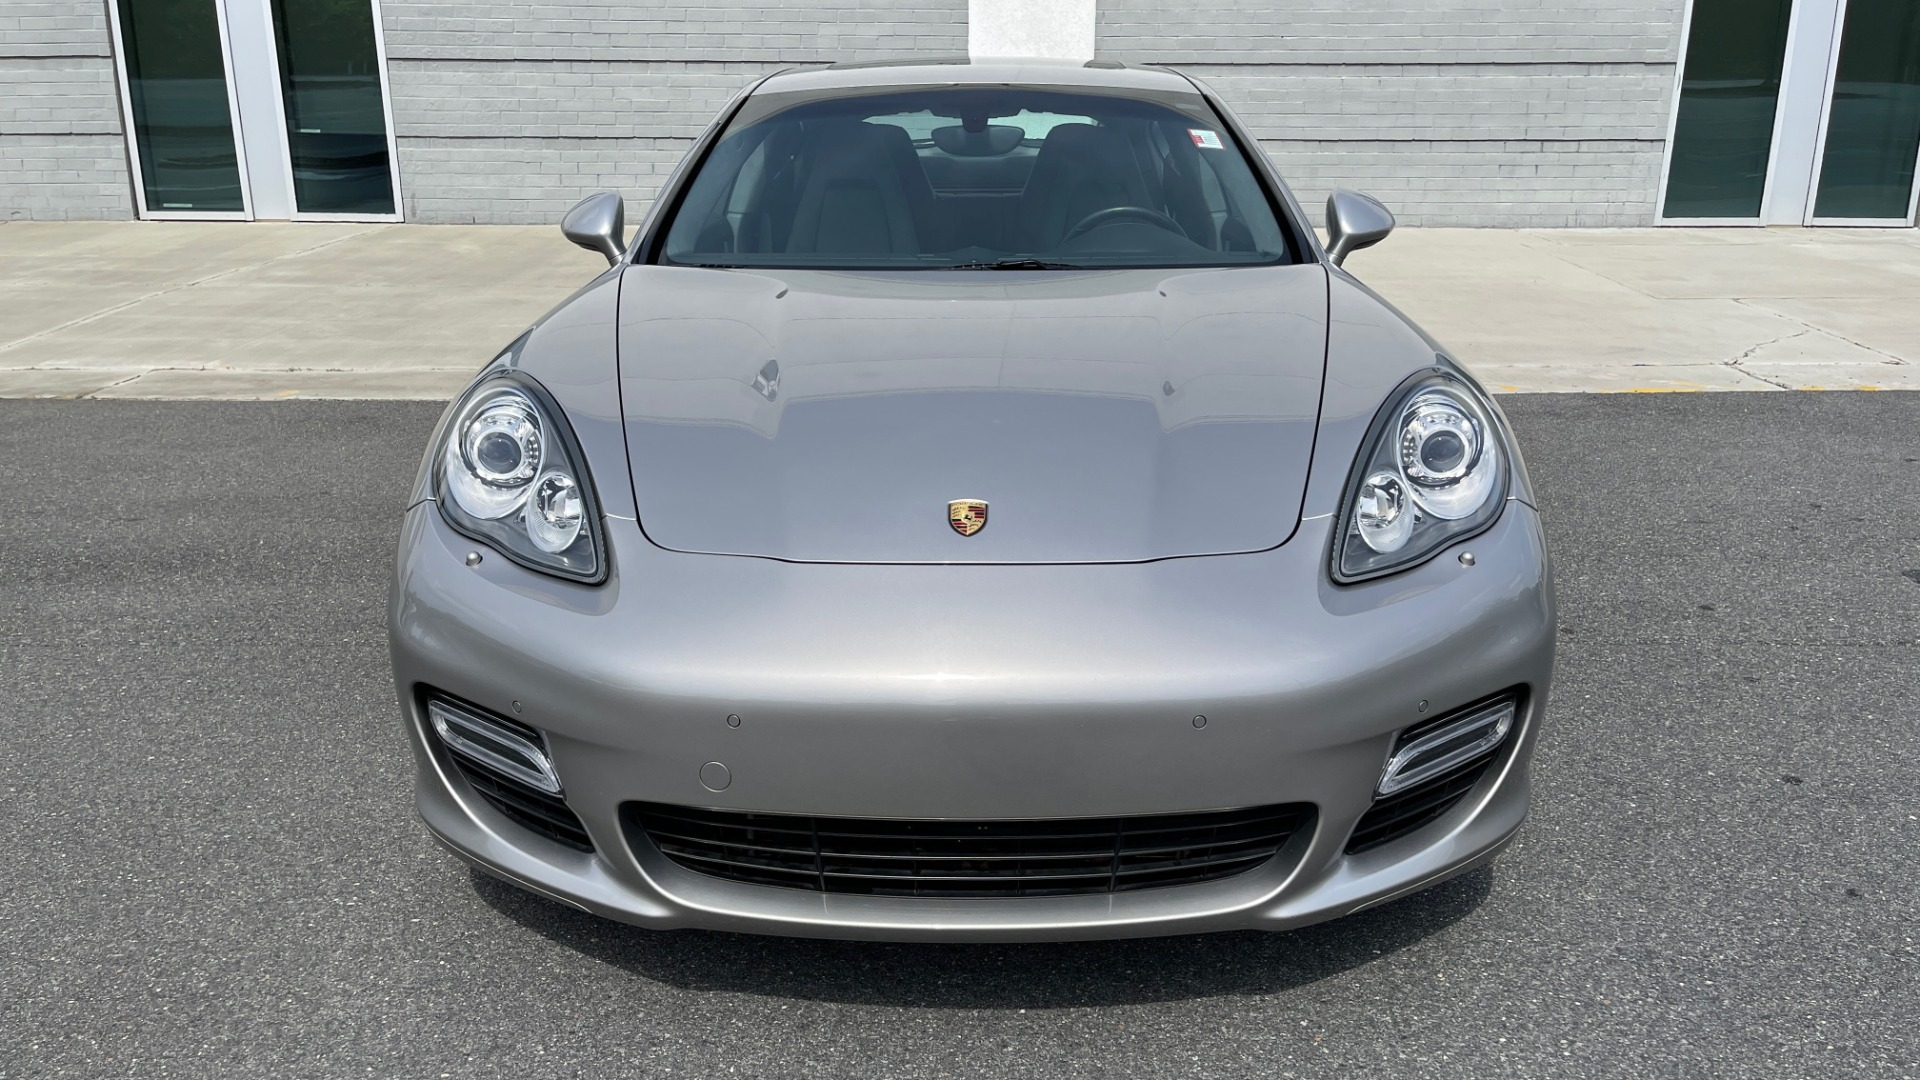 Used 2010 Porsche PANAMERA 4DR HB TURBO / SPORT CHRONO / BOSE / AUTO CLIMATE CONTROL for sale $42,124 at Formula Imports in Charlotte NC 28227 12